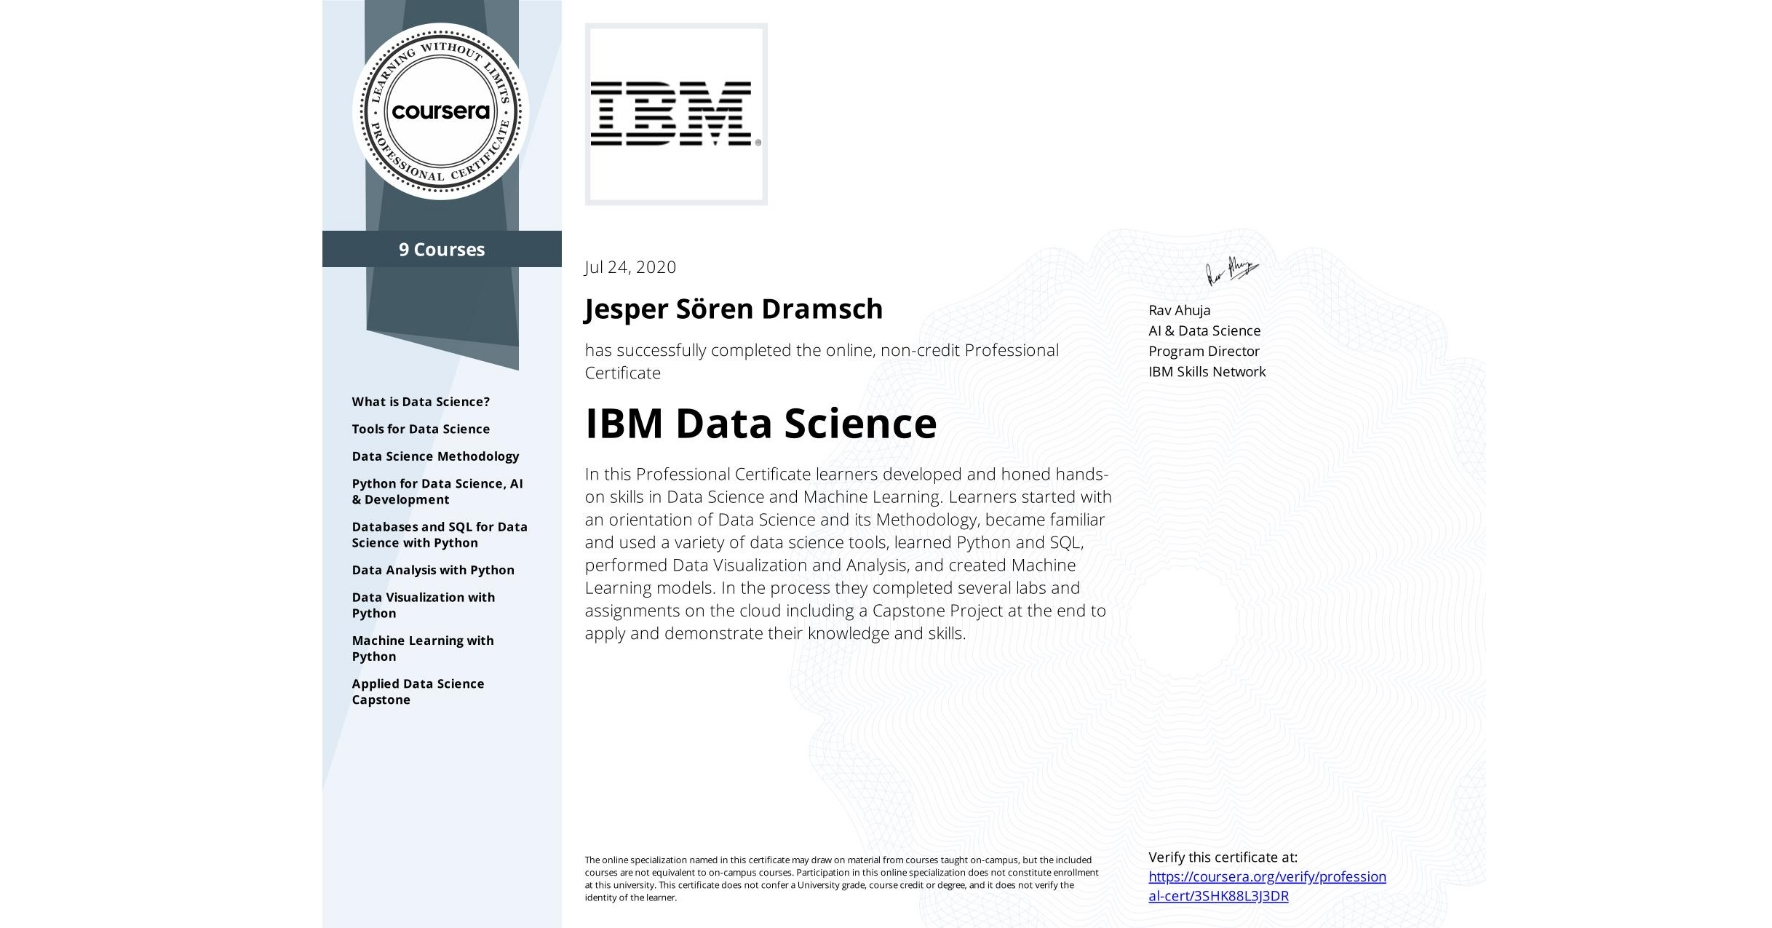 View certificate for Jesper Sören Dramsch, IBM Data Science, offered through Coursera. In this Professional Certificate learners developed and honed hands-on skills in Data Science and Machine Learning. Learners started with an orientation of Data Science and its Methodology, became familiar and used a variety of data science tools, learned Python and SQL, performed Data Visualization and Analysis, and created Machine Learning models.  In the process they completed several labs and assignments on the cloud including a Capstone Project at the end to apply and demonstrate their knowledge and skills.